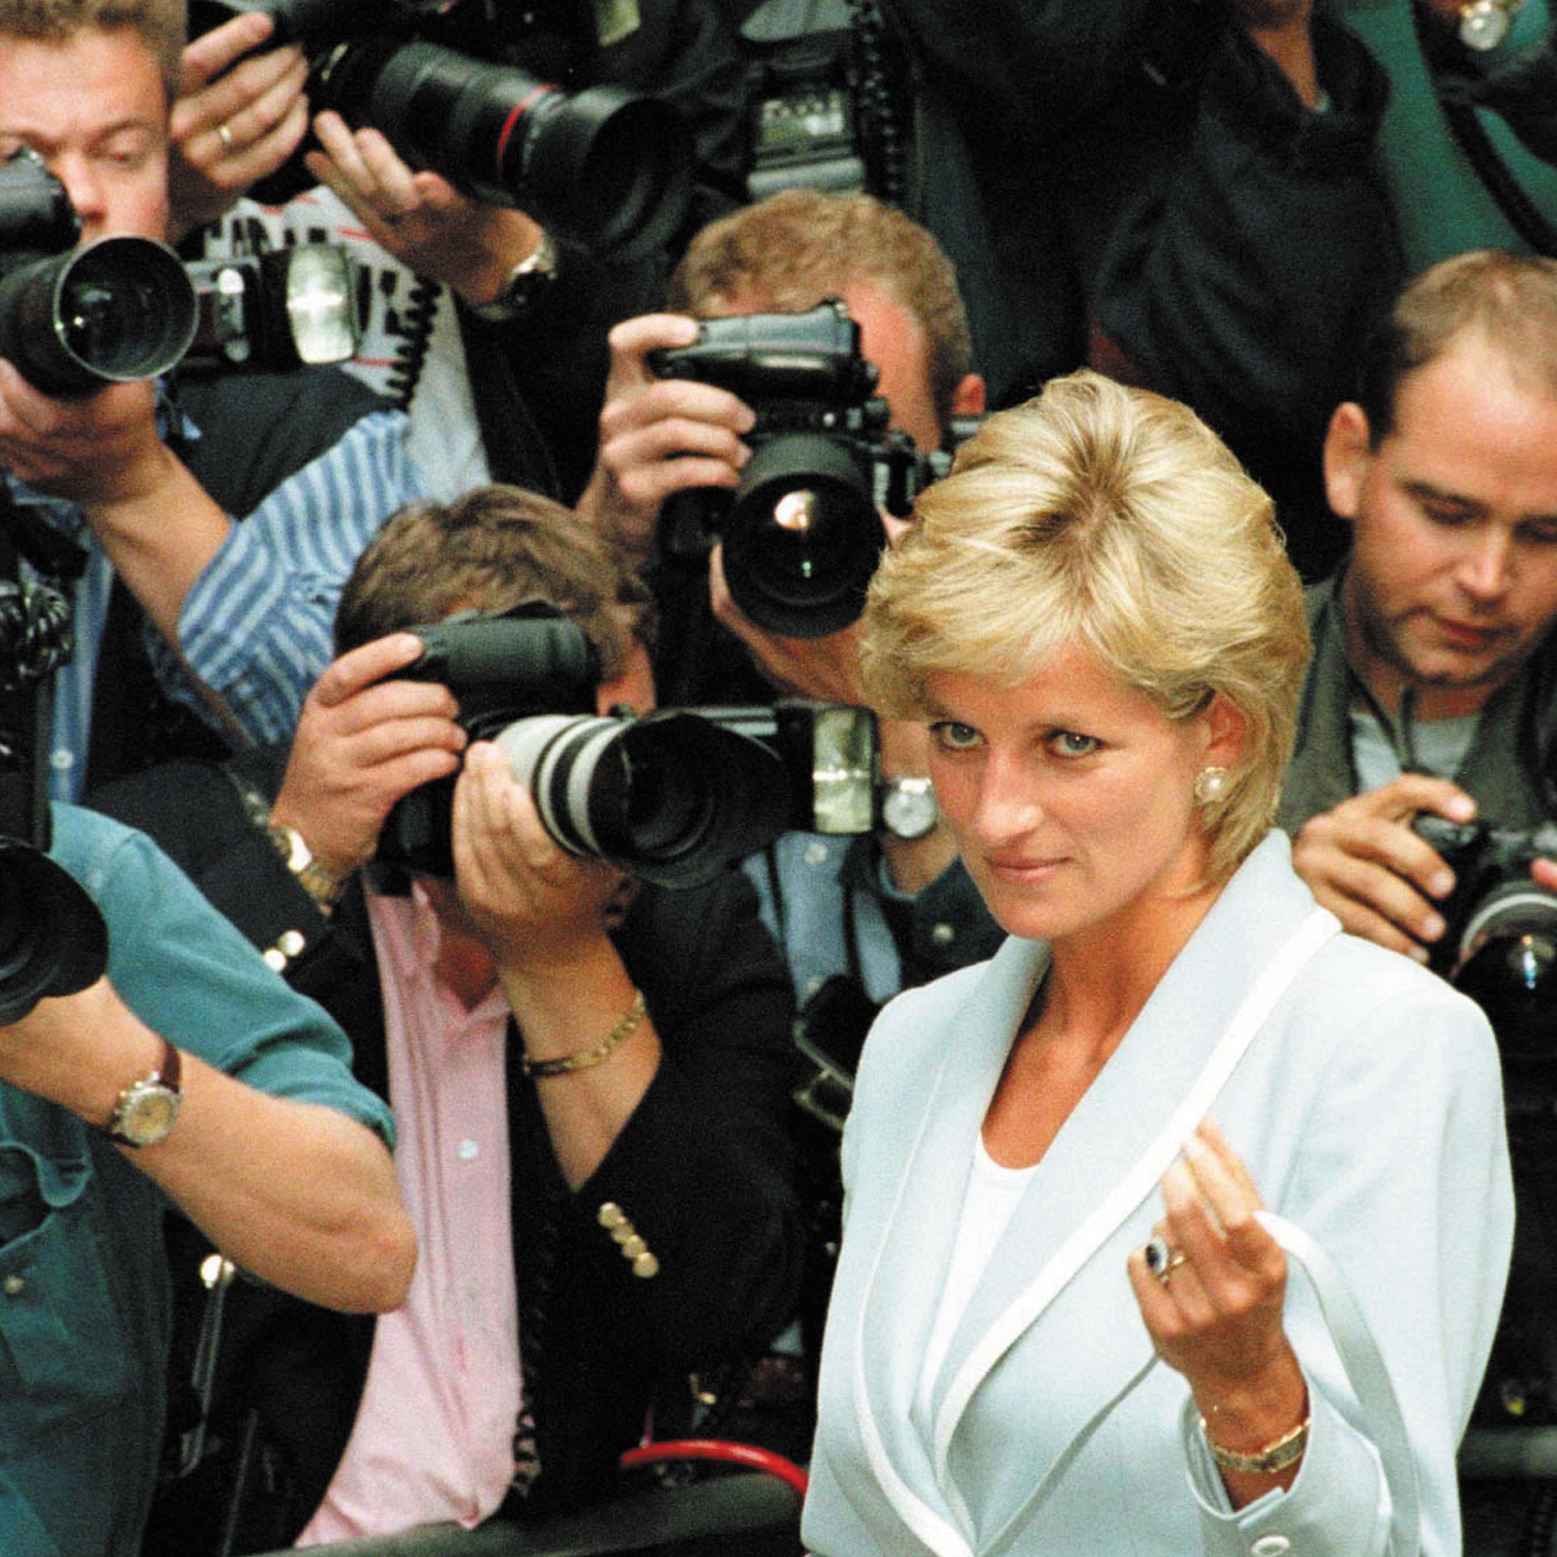 diana paparazzi e1574770523370 Stay Tuned For 20 Amazing Facts About The Truman Show